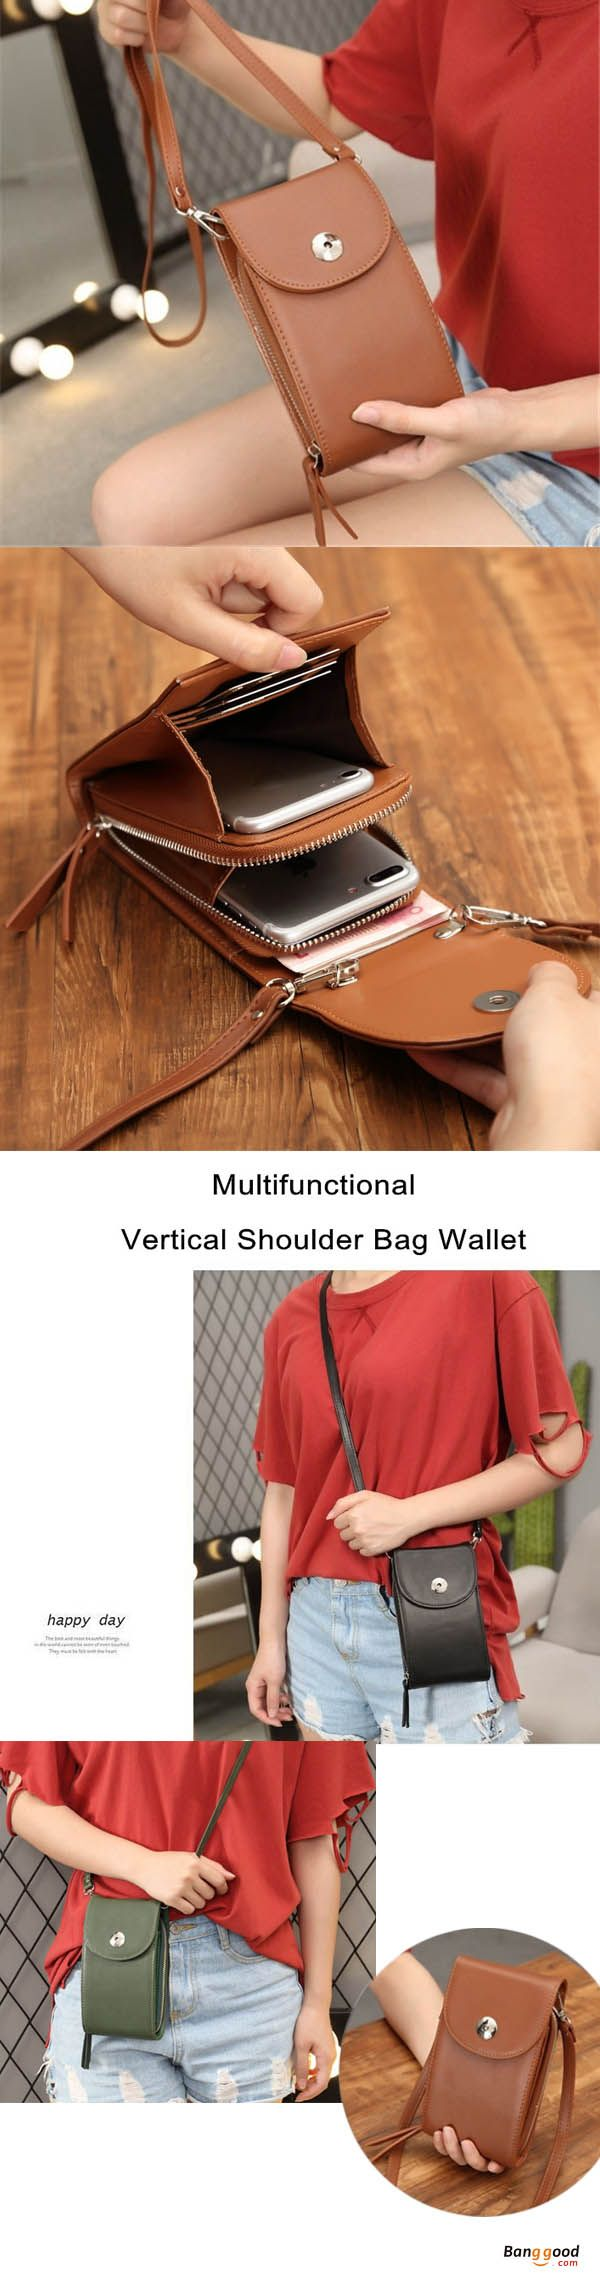 US$17.99 + Free shipping. Our design of small crossbody cell phone bag as fashionable, lightweight and convenience. You can carry a smartphone, money and other tiny things. Vertical Shoulder Bag Wallet, Multi-functional bag, wallet purse, crossbody bag, card bag, phone bag. Buy now!